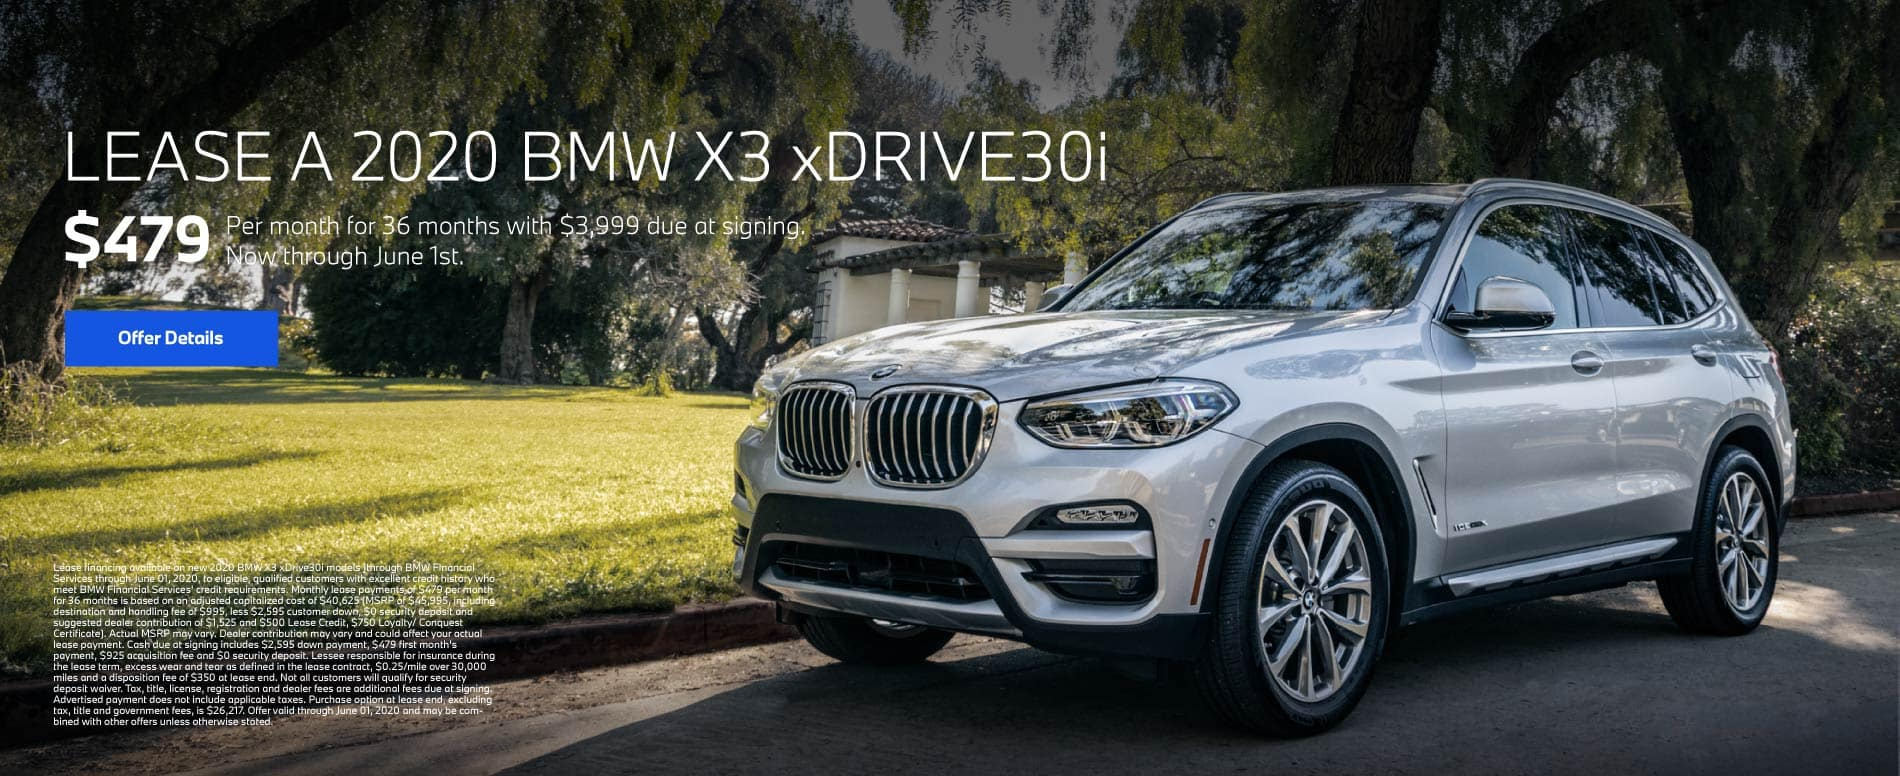 Lease a 2020 BMW X3 xDRIVE30i for $479 per month for 36 months with $3,999 due at signing - Click To View Inventory